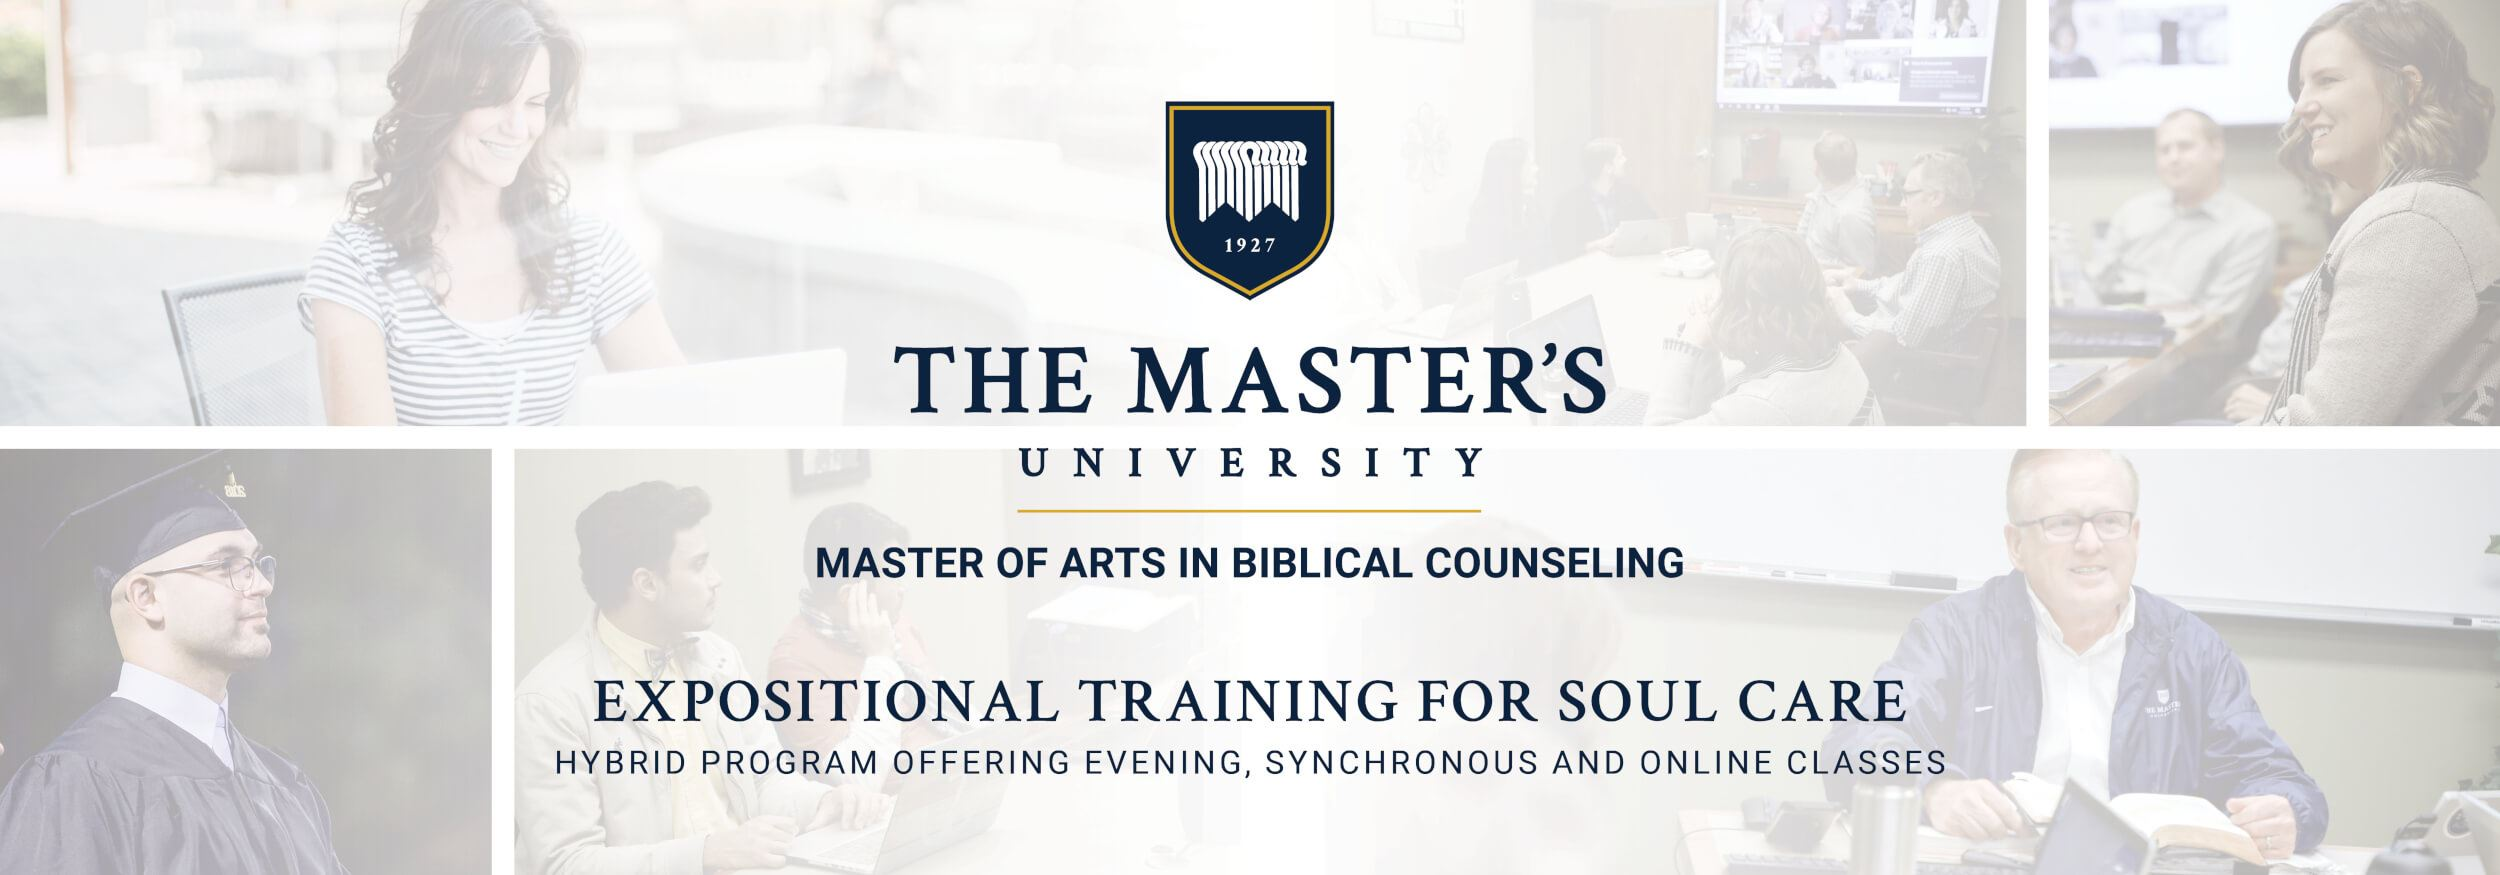 Master of Arts in Biblical Counseling